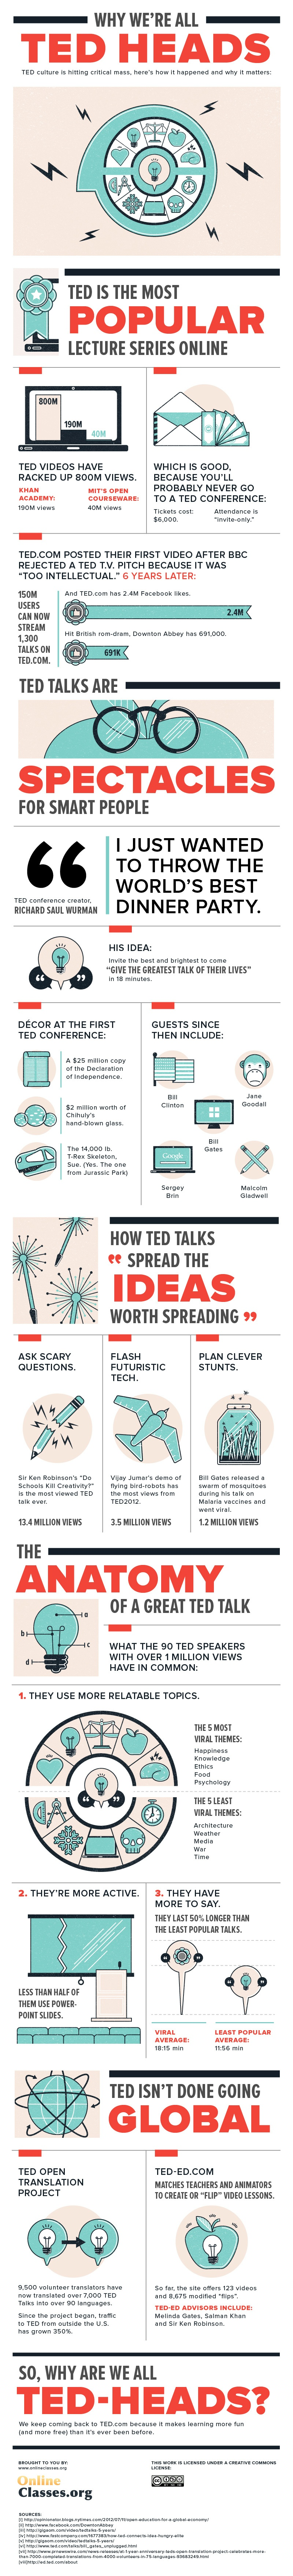 Why-TED-is-a-Great-Place-to-Learn-Online-Infographic